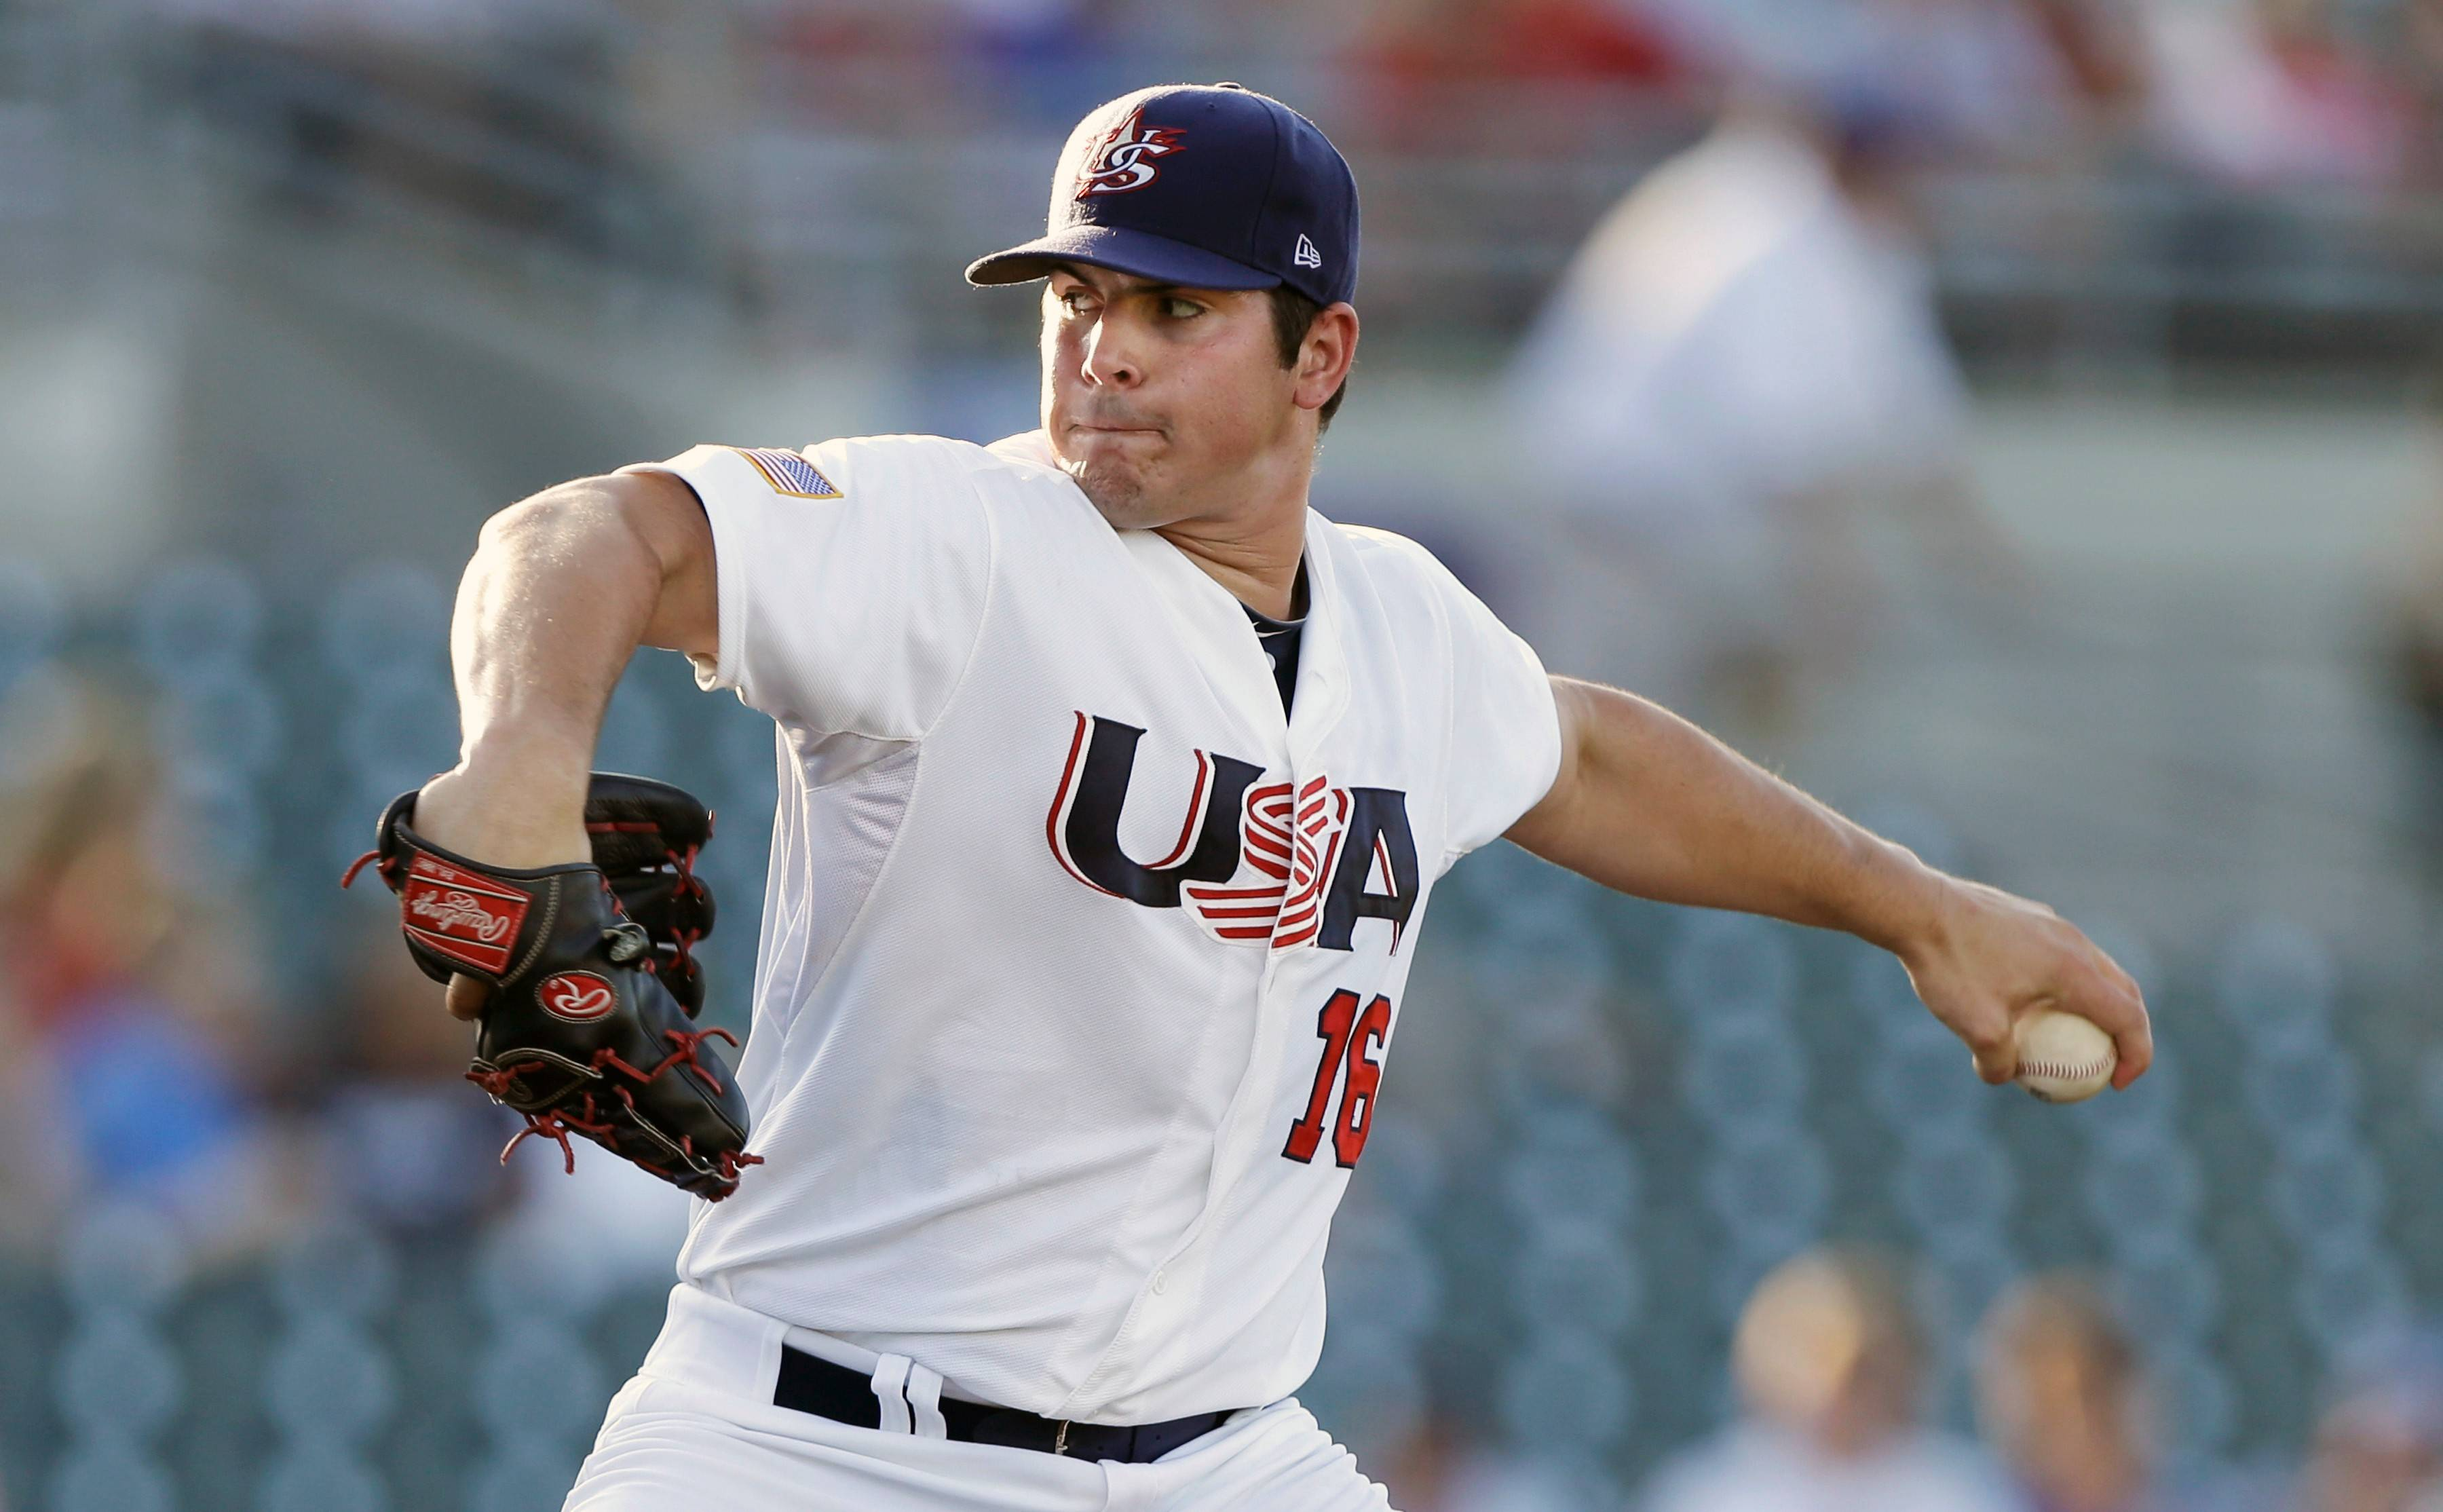 Carlos Rodon, seen here pitching for the United States in a 2013 exhibition game against Cuba, is likely to be in the White Sox' bullpen when rosters expand in September.